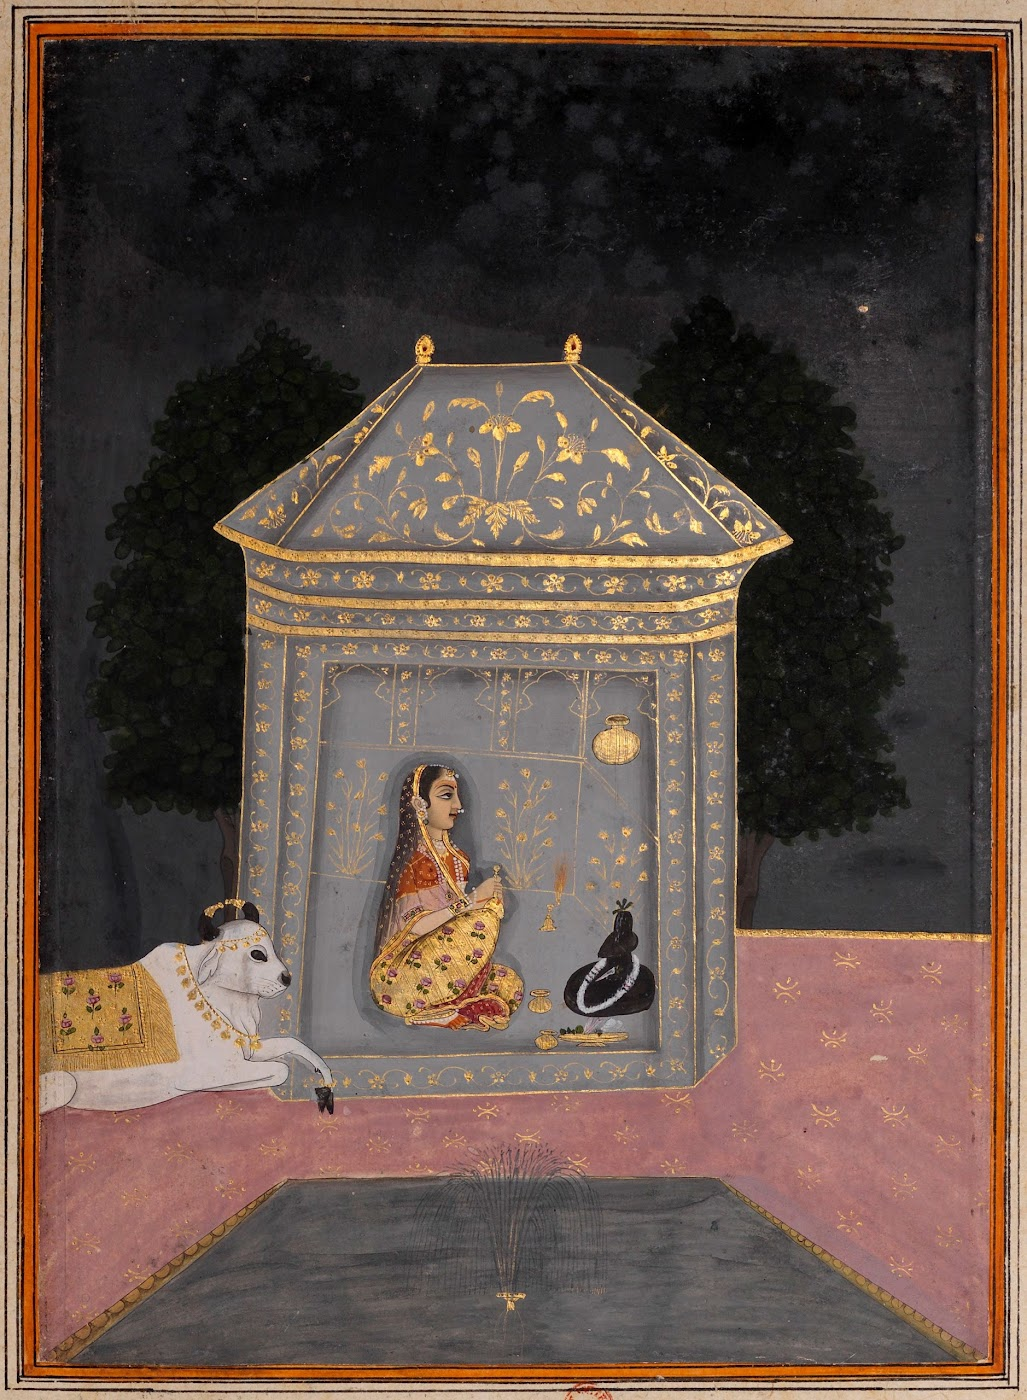 Lady Worshipping Shiva Linga - Rajput Ragamala Painting from a Manuscript, Circa 1800